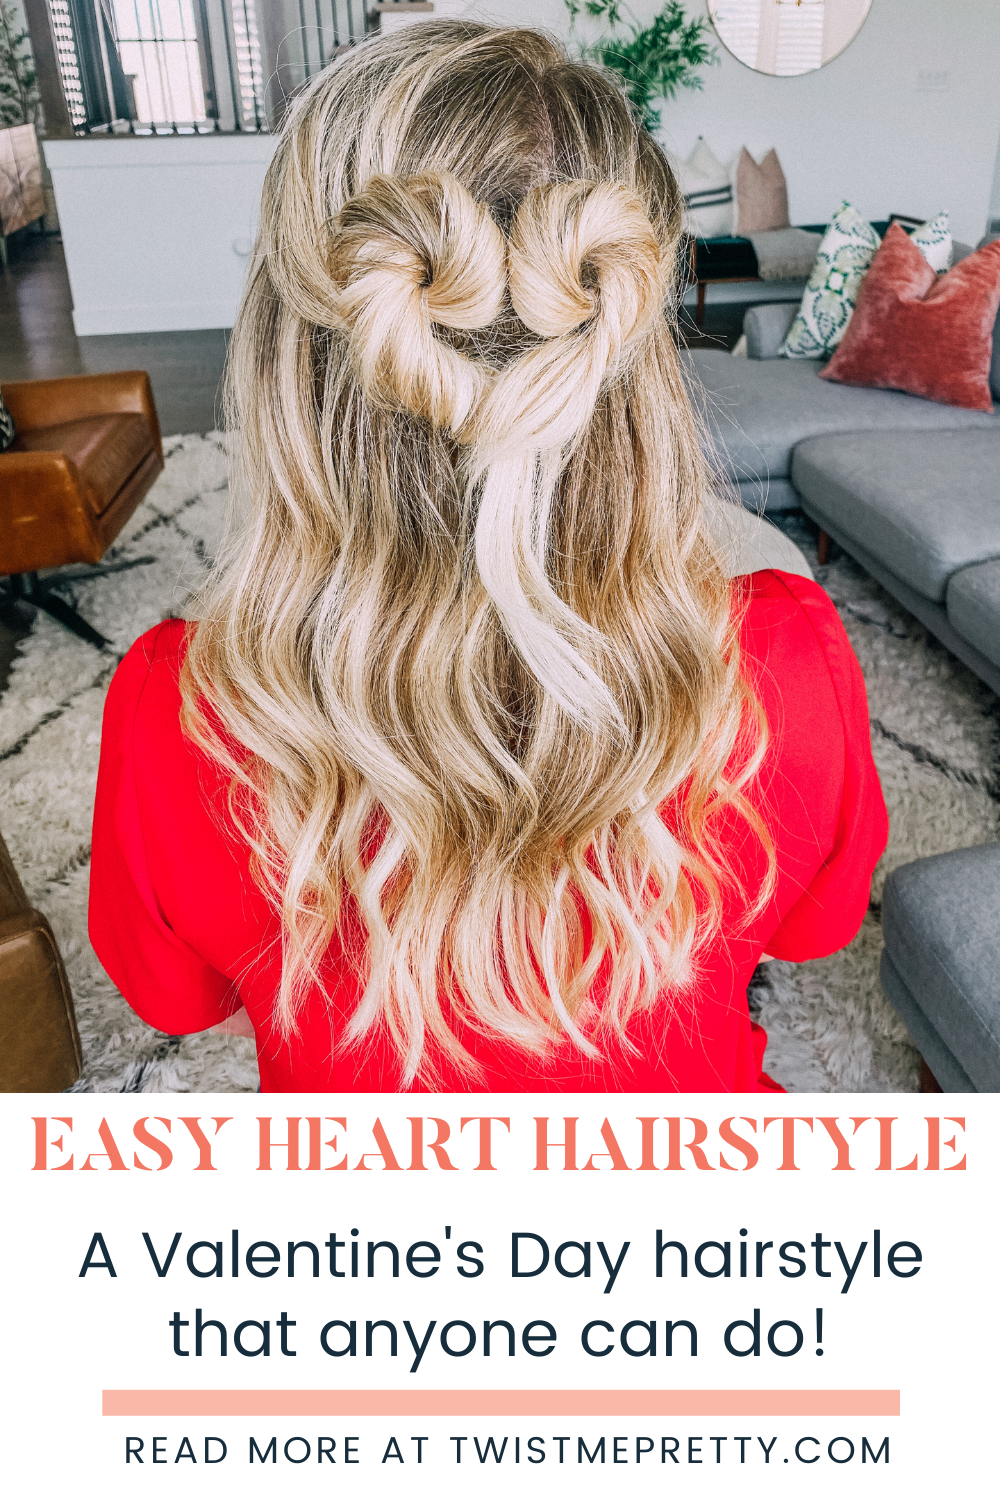 Easy Heart Hairstyle- A Valentine's Day hairstyle that anyone can do! www.twistmepretty.com